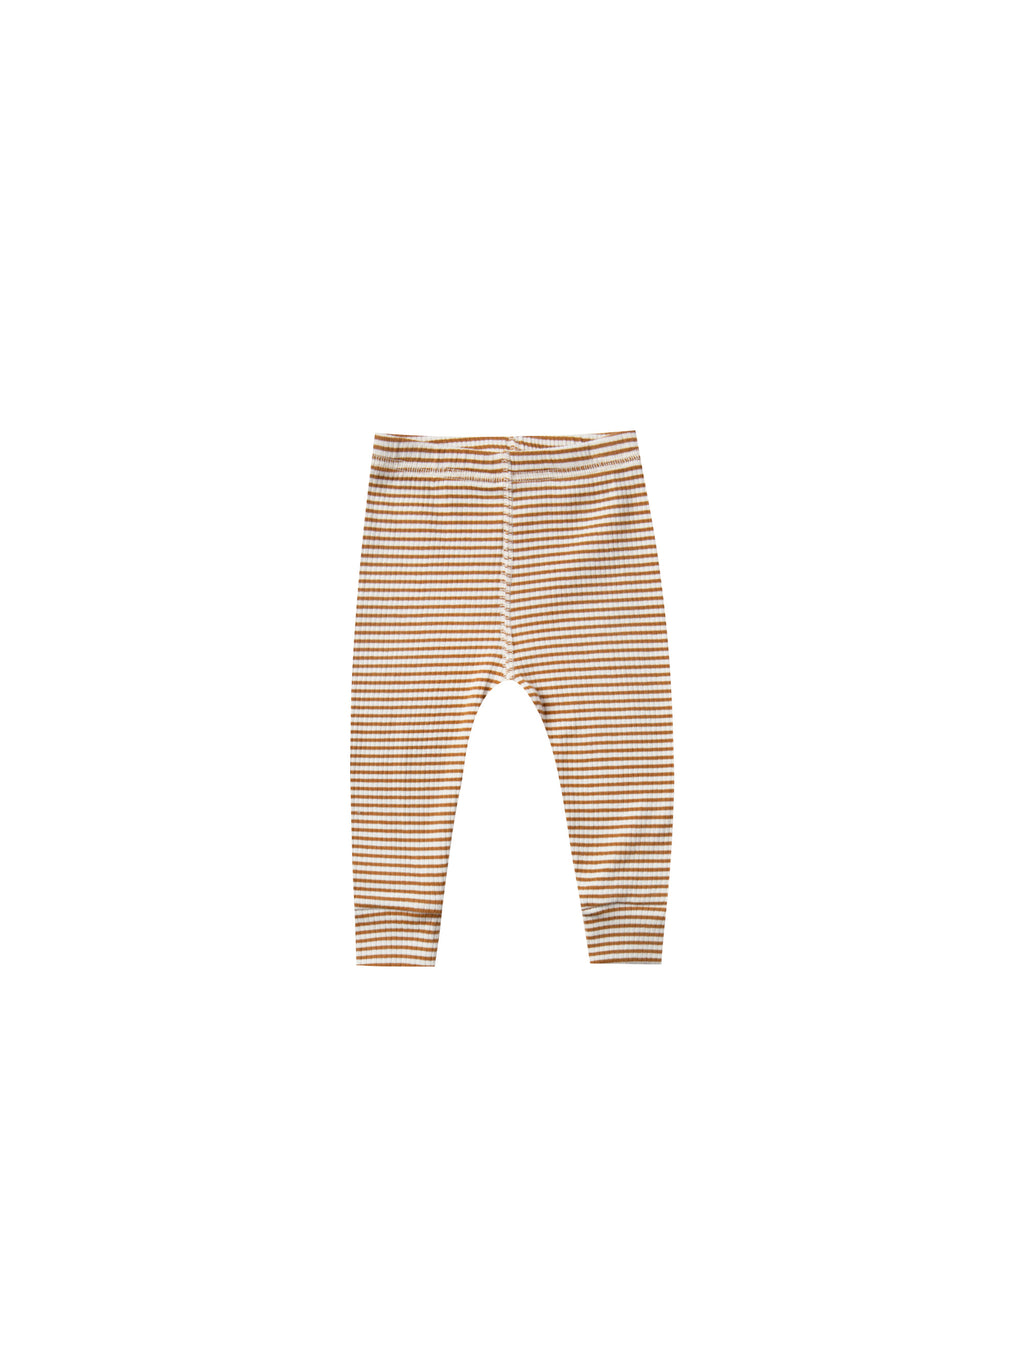 Quincy Mae Ribbed Legging - Walnut Stripe